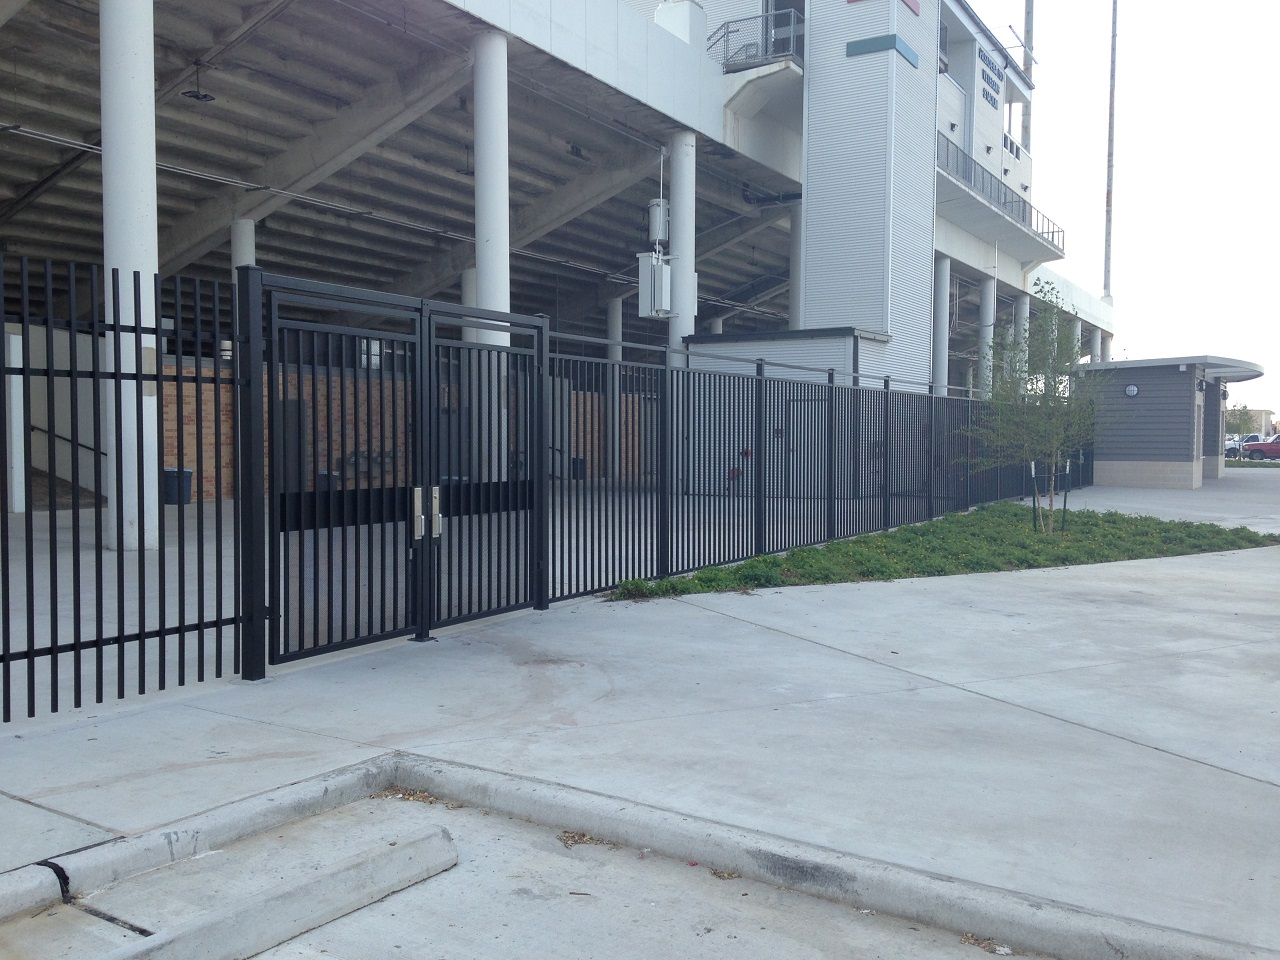 Chain Link Fence Is And Inexpensive Way To Secure Or Contain A Project. It  Comes In Galvanized, Aluminized And Vinyl Coated Mesh And Framework.